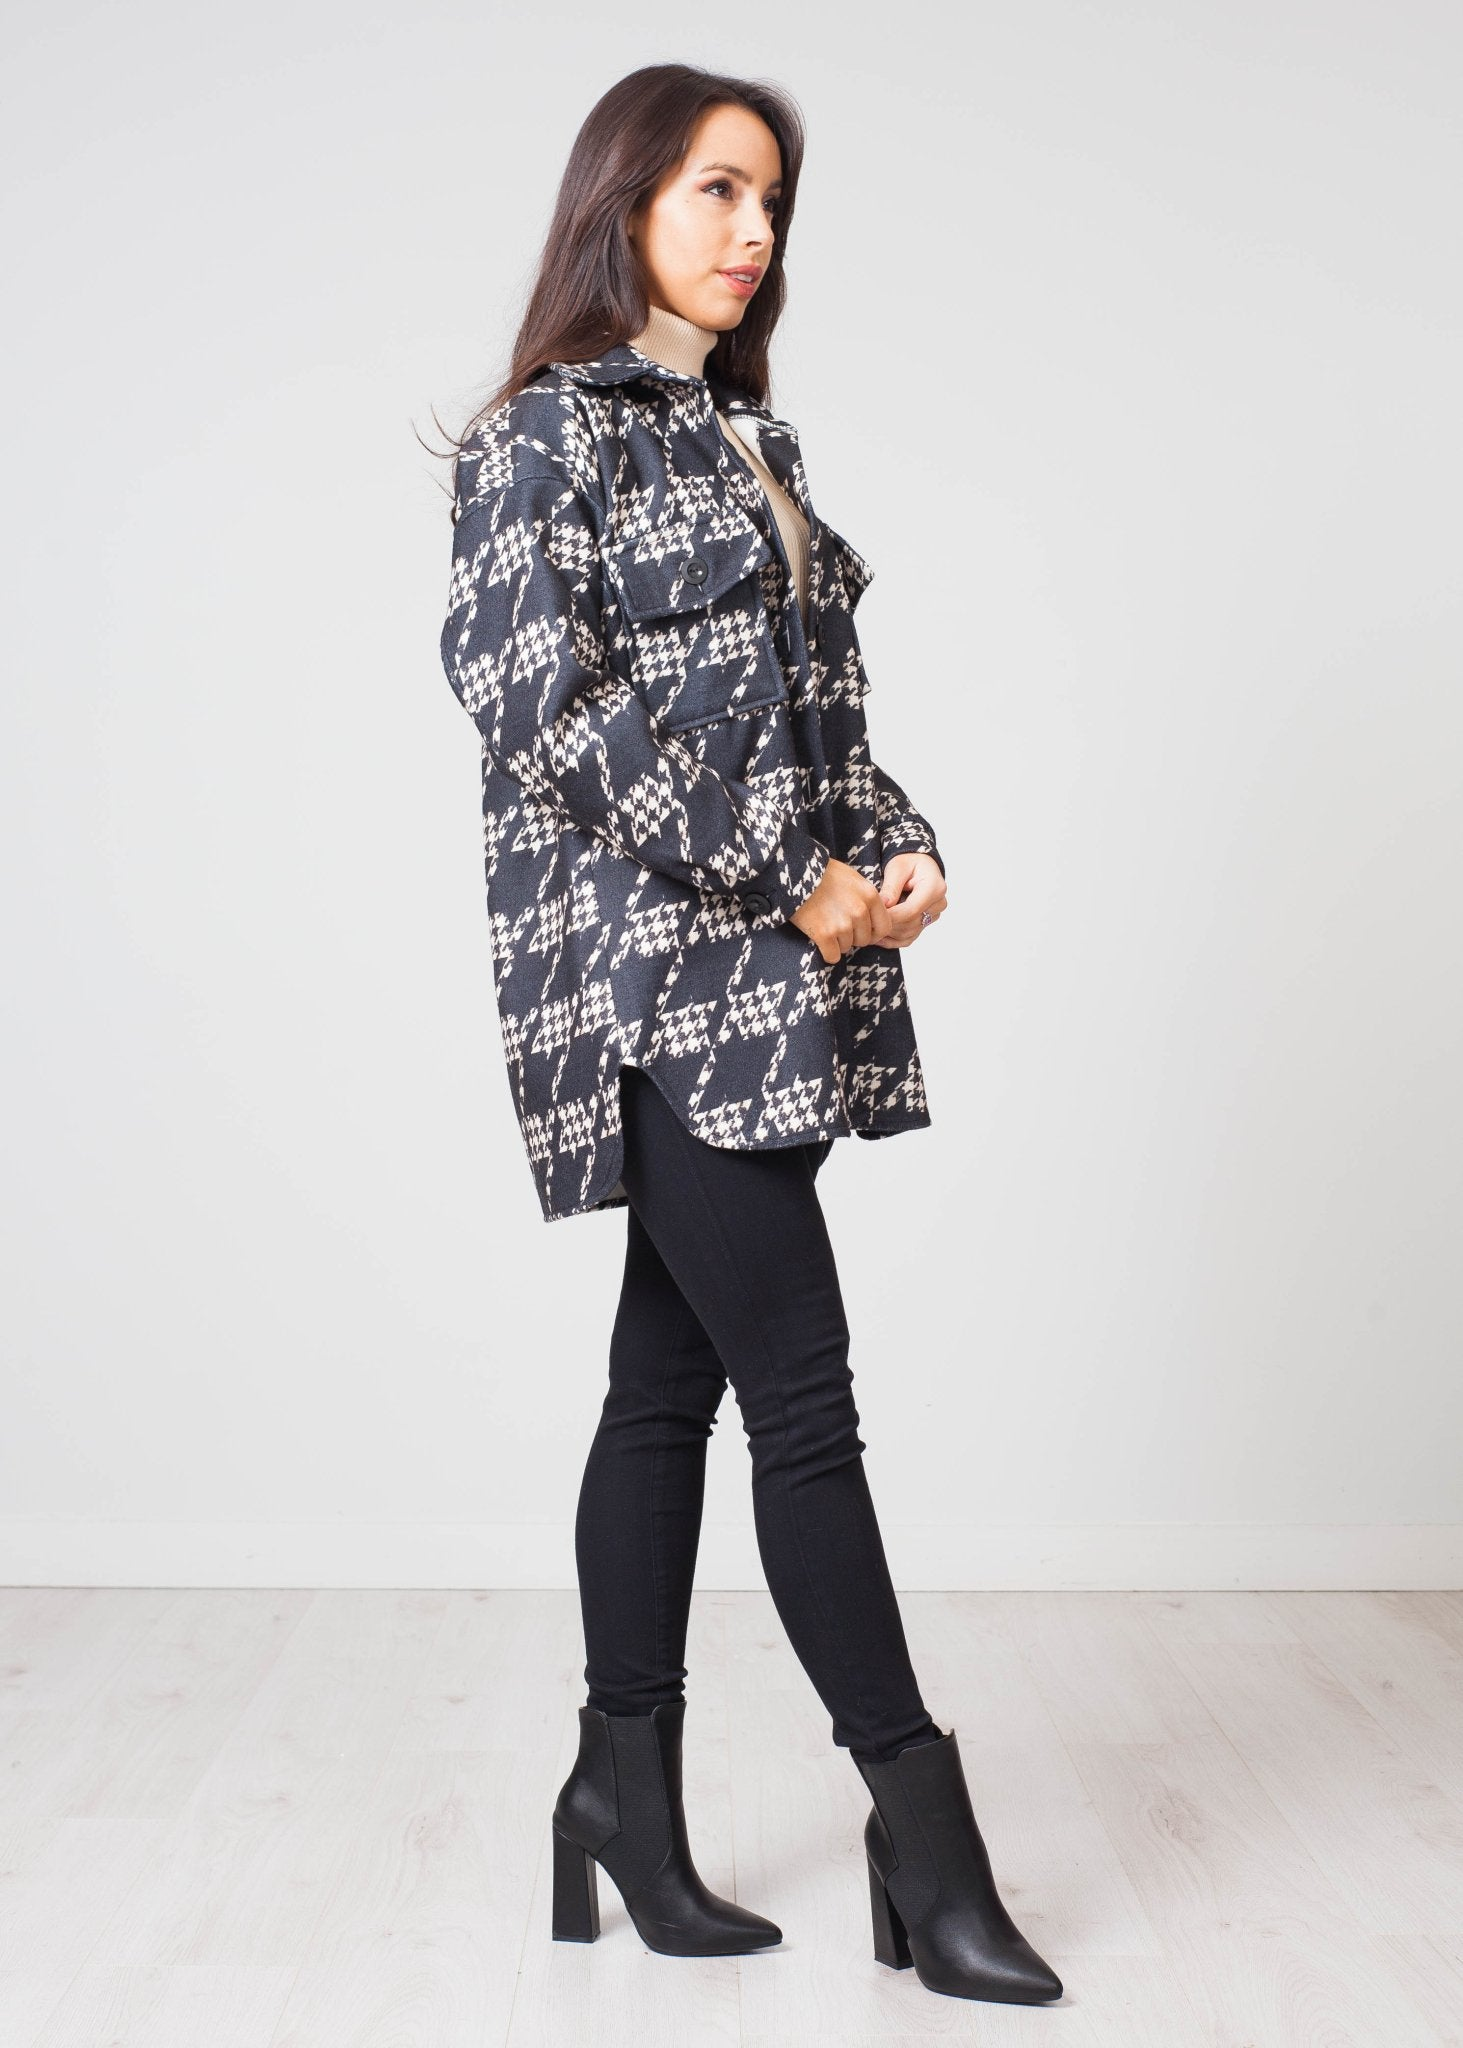 Indie Houndstooth Shacket In Black - The Walk in Wardrobe